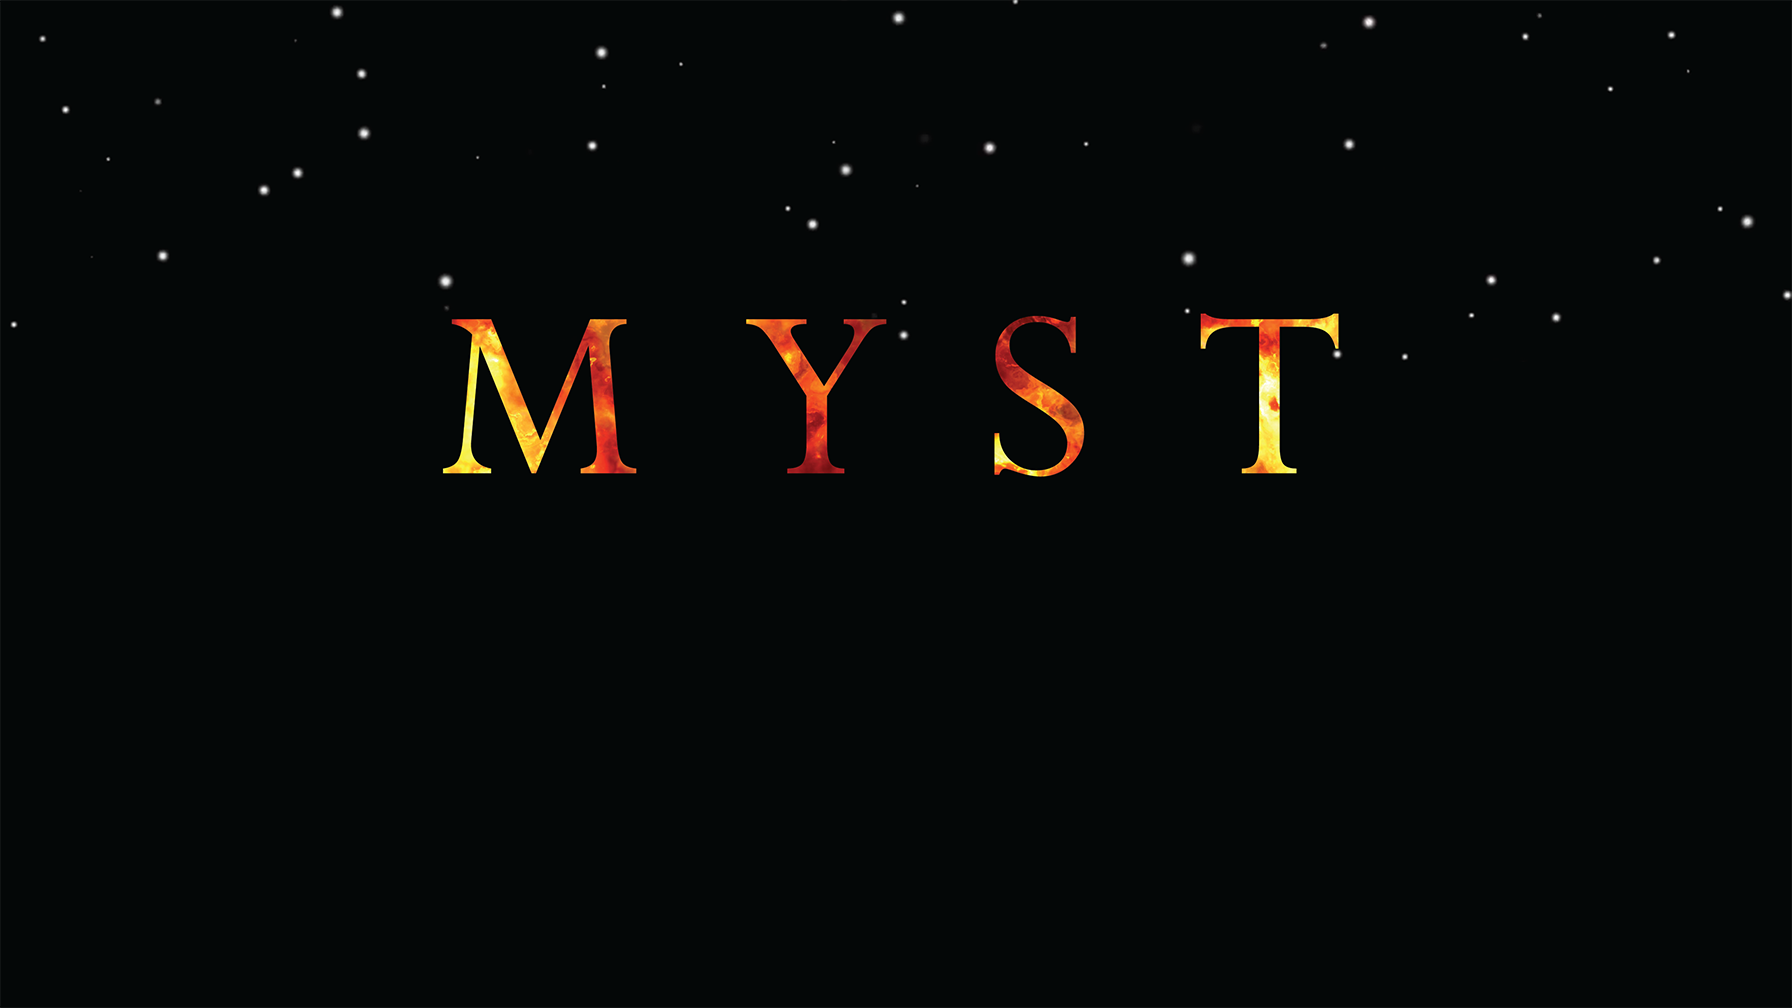 Myst splash screen